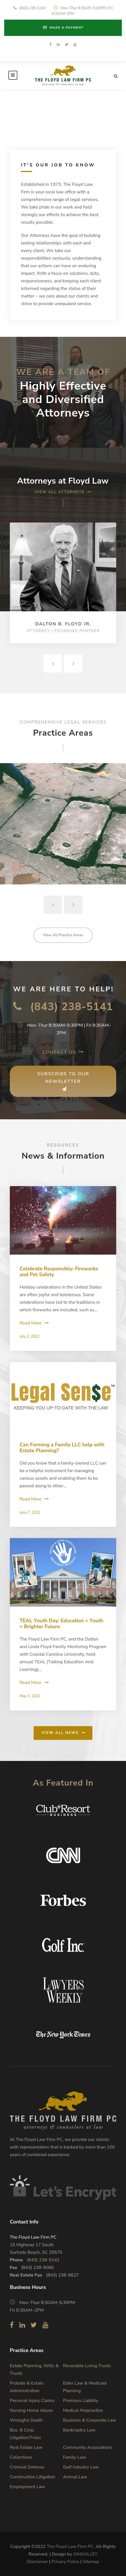 The Floyd Law Firm PC - Surfside Beach SC Lawyers